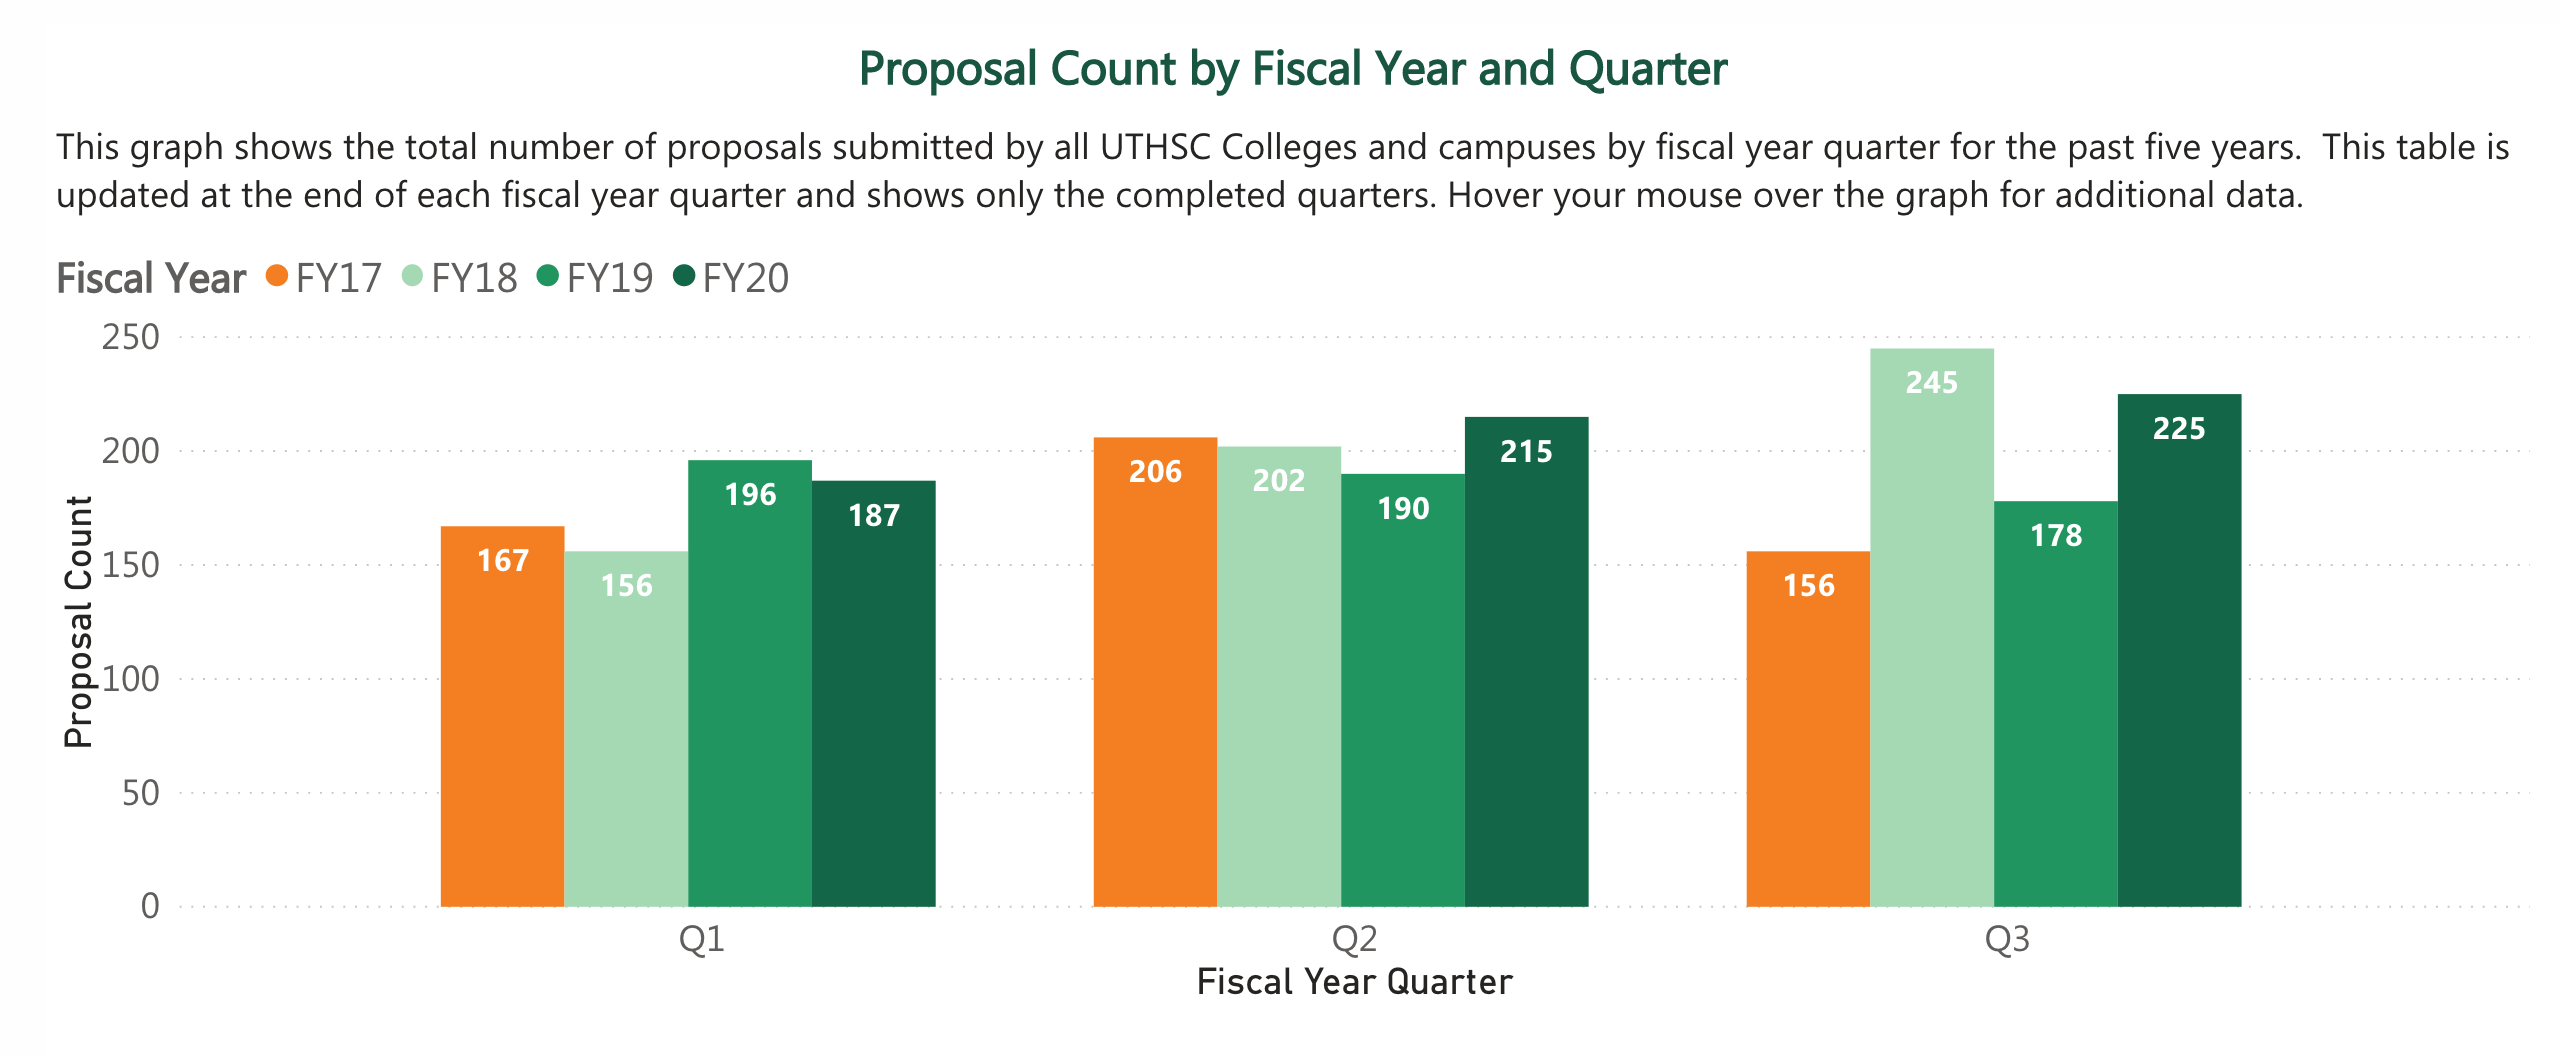 Proposal Count by Fiscal Year and Quarter